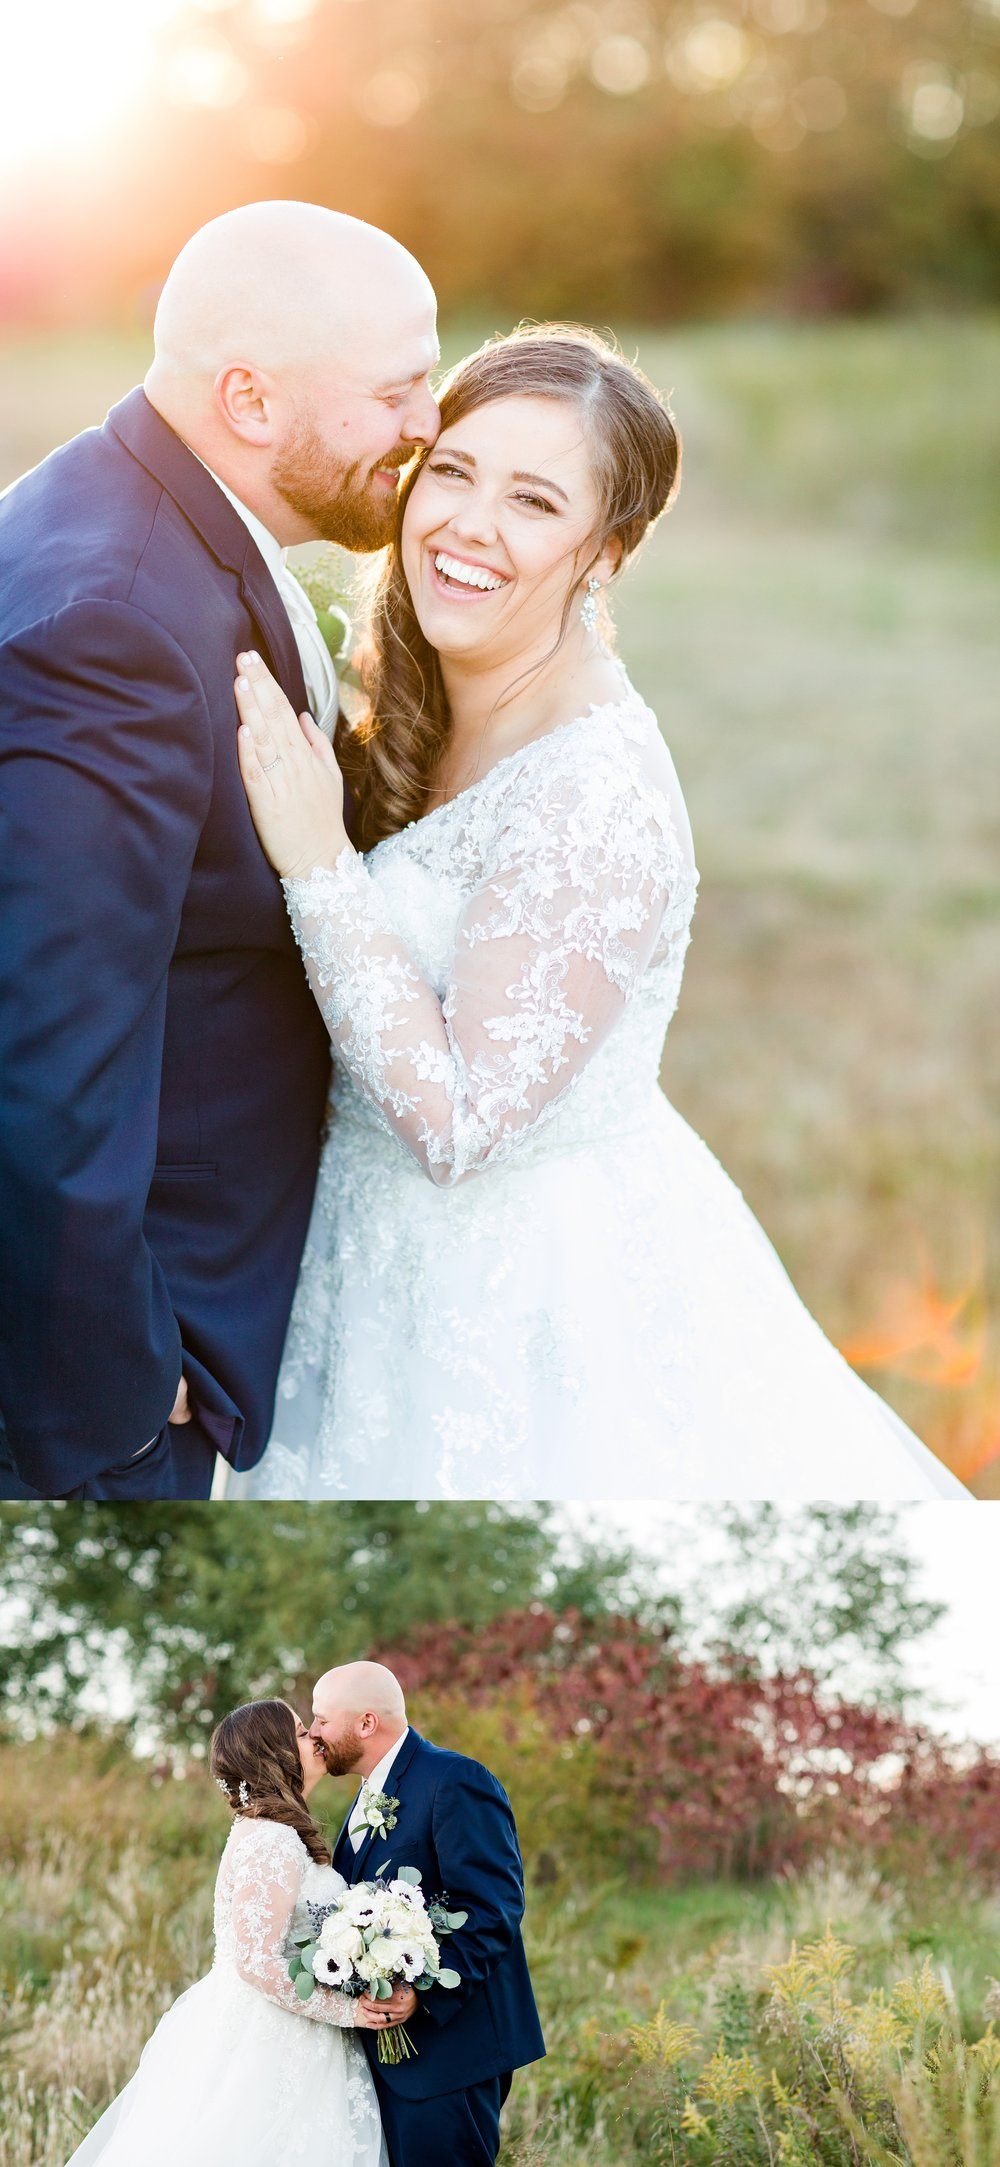 Komorebi Photography Fine Art Wedding Photographer Old Towne Events